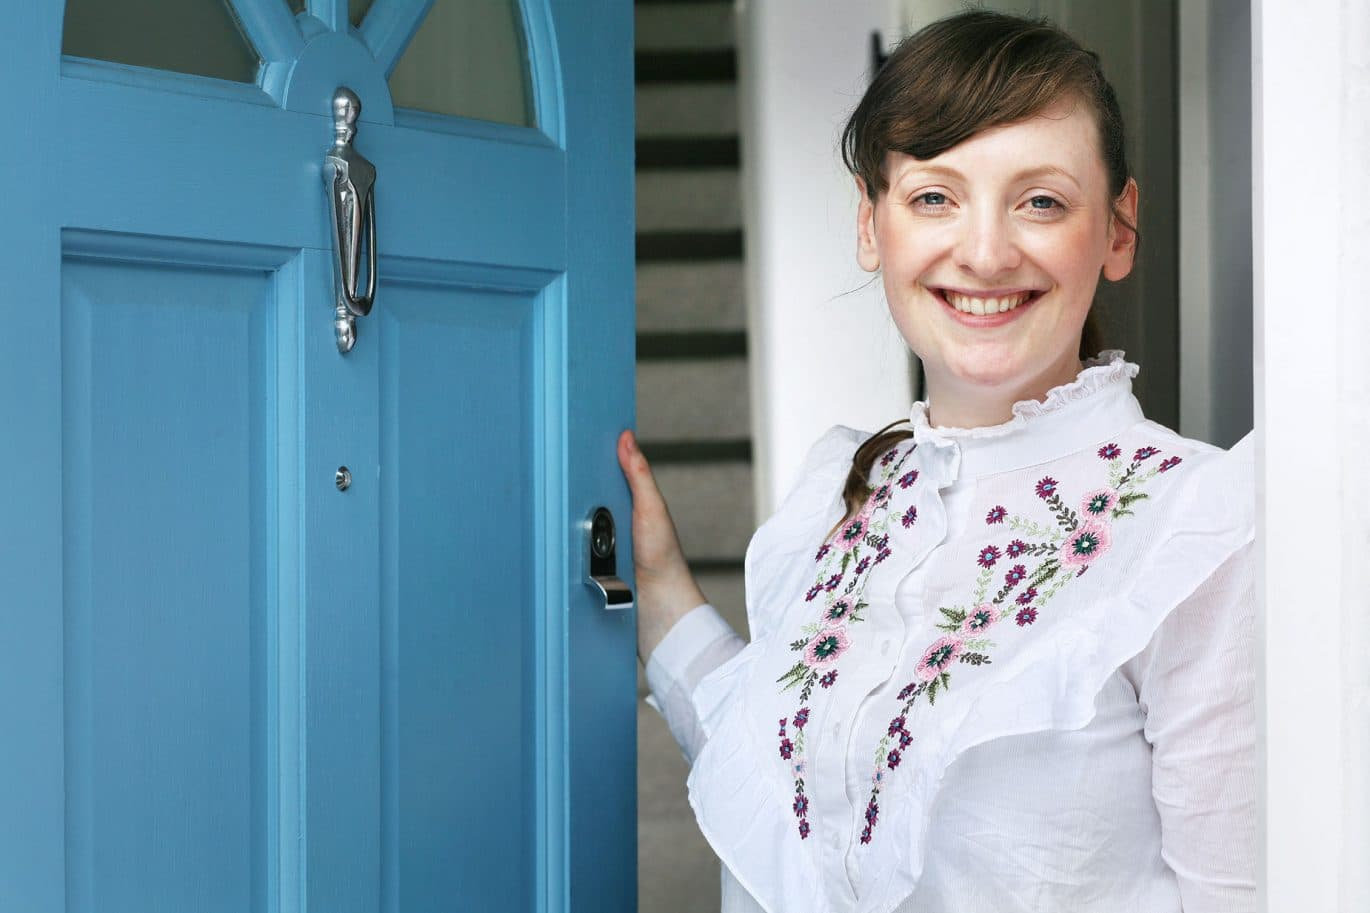 A Happy Clear Interiors of Norwich Cleaning Customer stands smiling at their front door